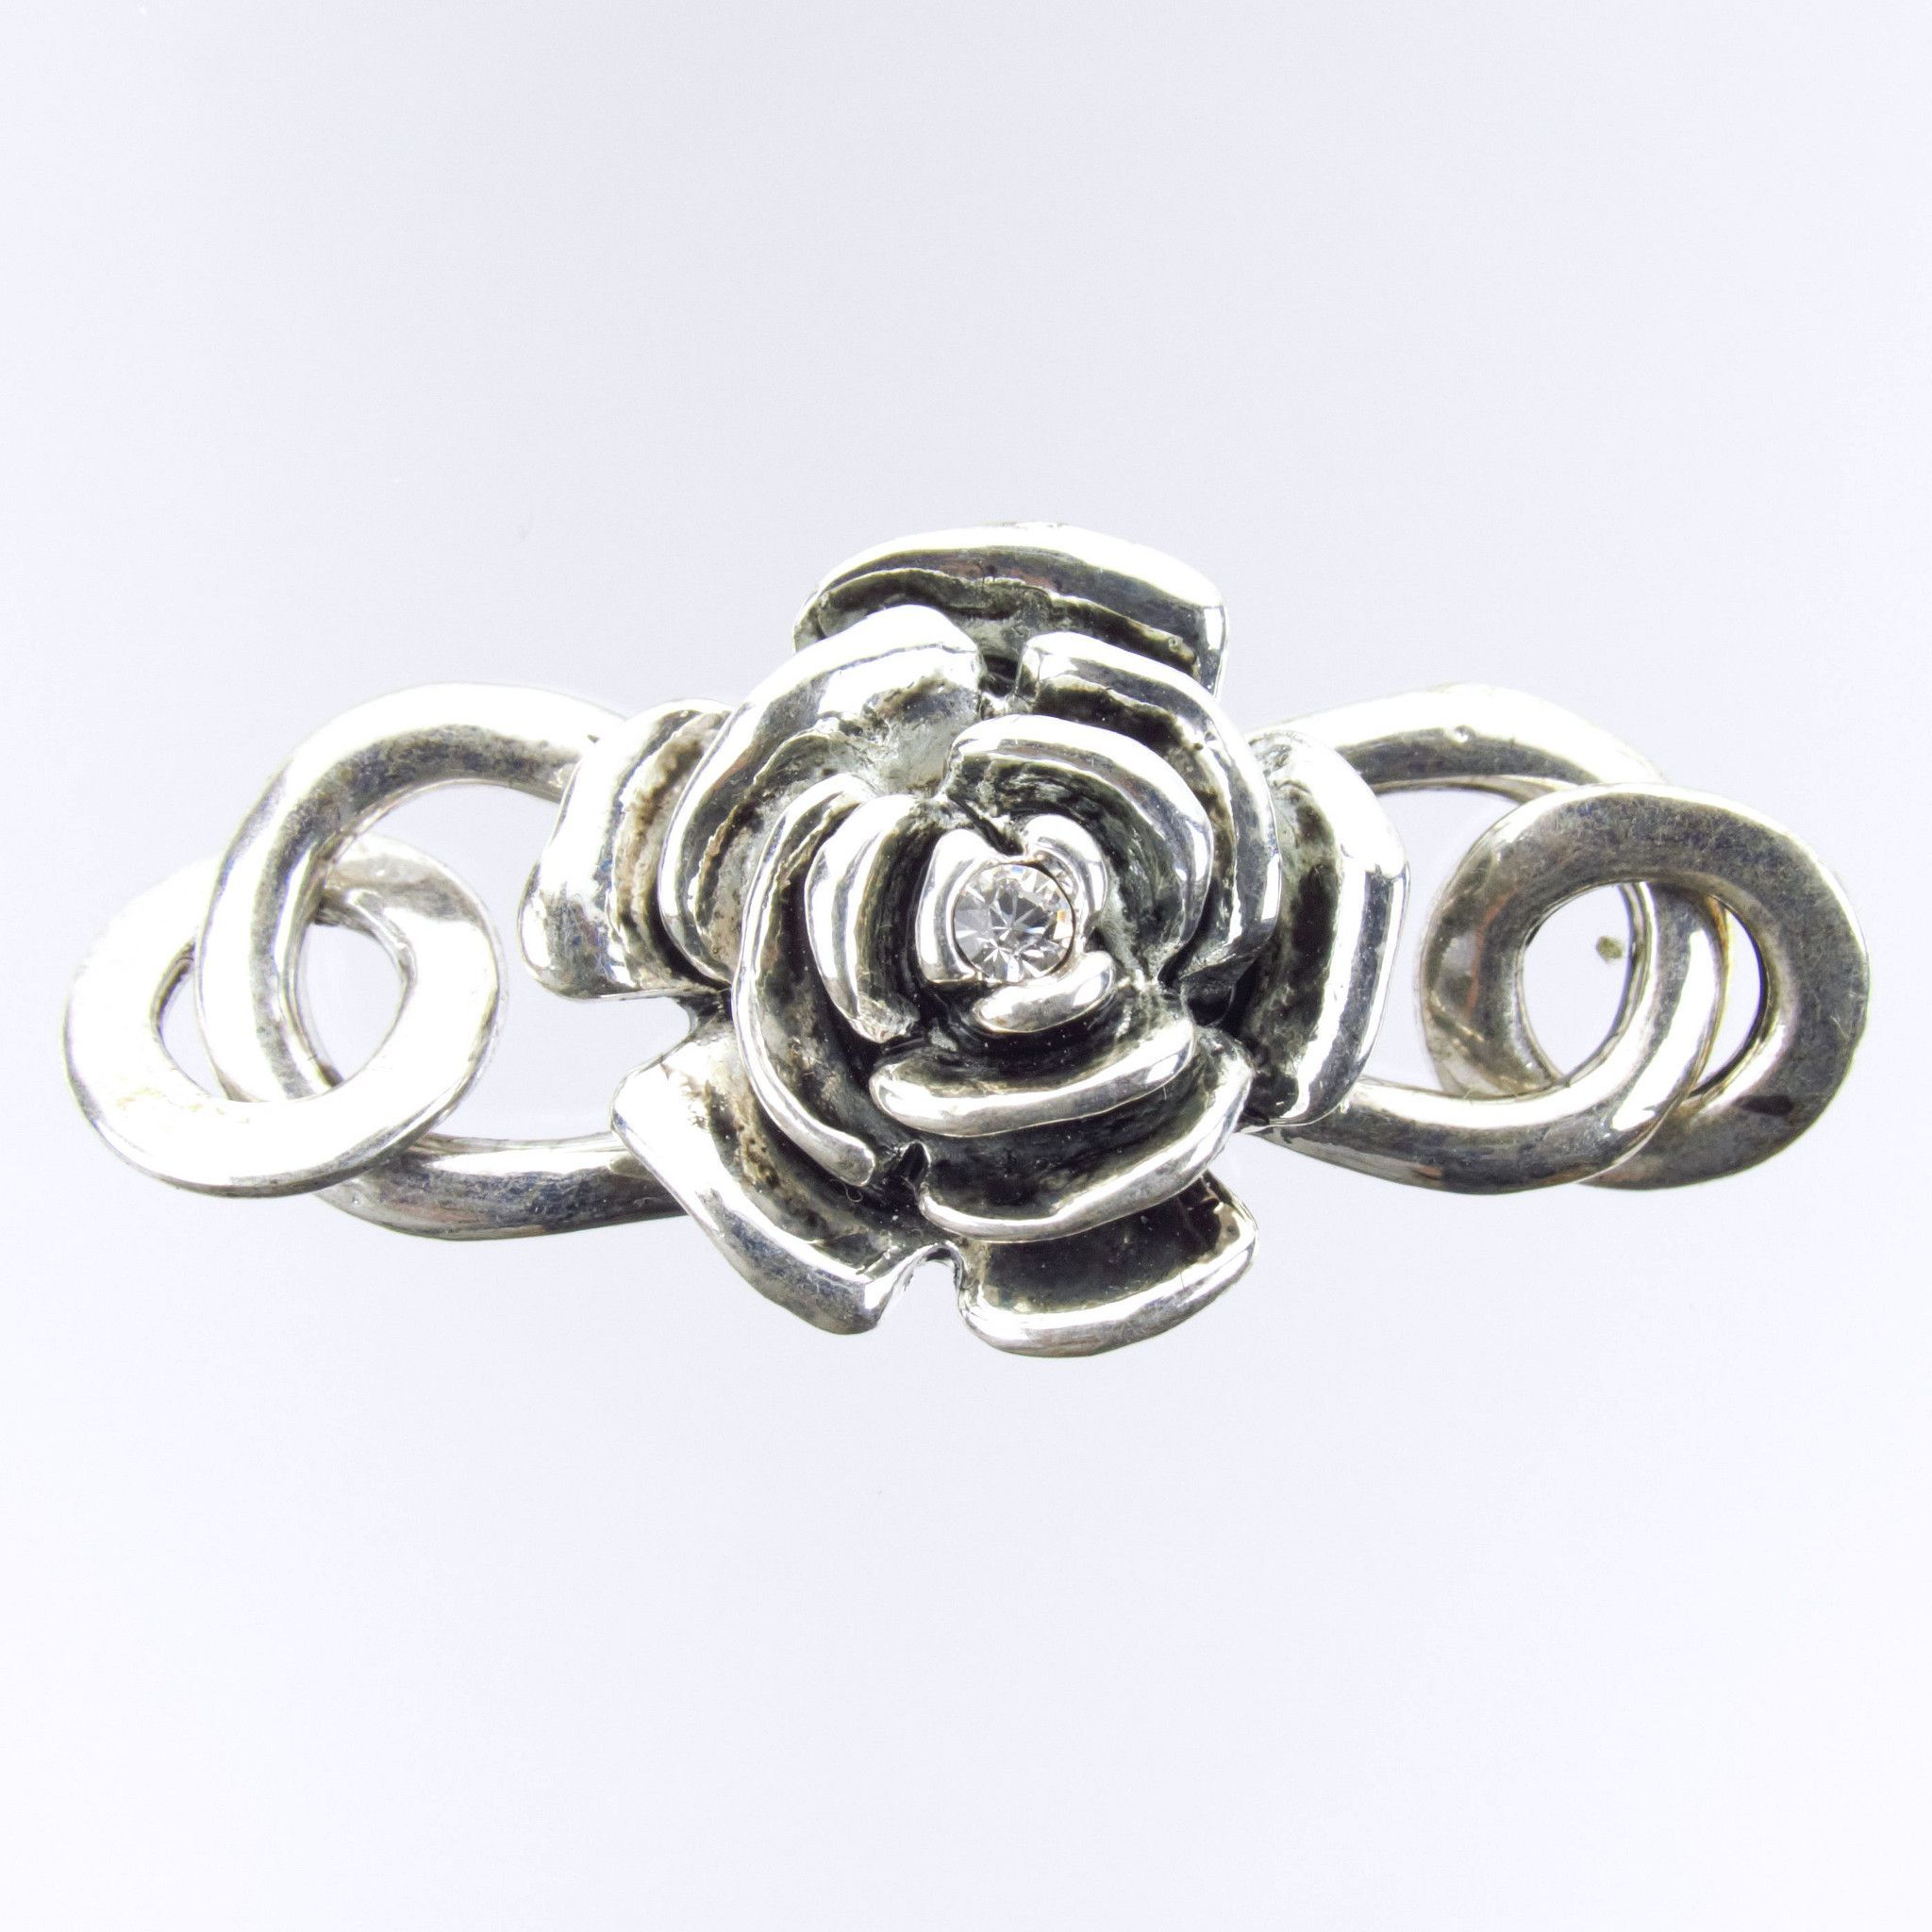 32x18mm In Full Bloom Rose Preciosa Crystal Antique Silver Finish Alloy Metal S-Hook Clasp (PC3)